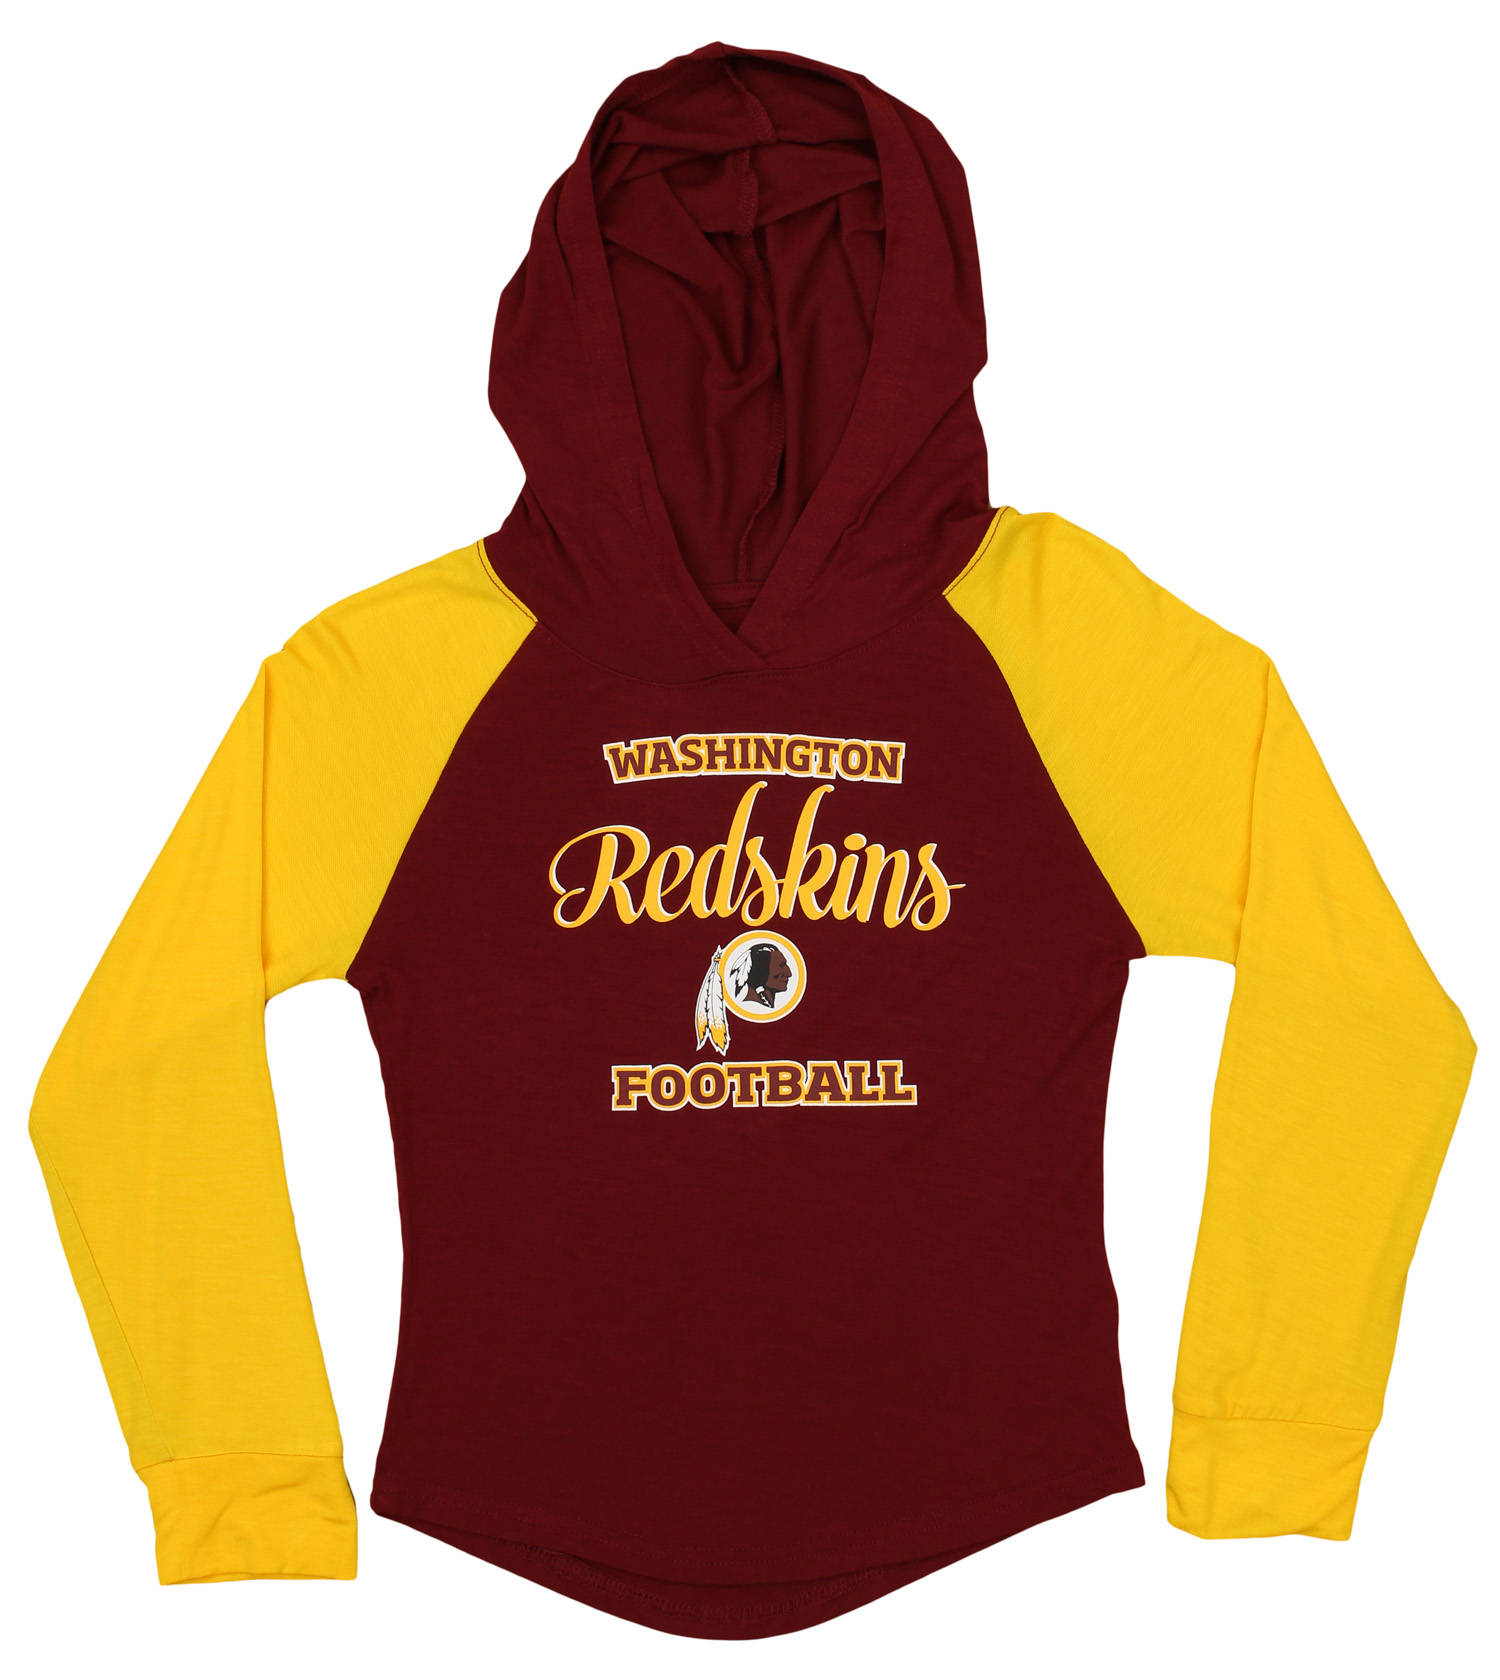 0b83e796 Details about OuterStuff NFL Youth Girls Long Sleeve Hooded Shirt,  Washington Redskins